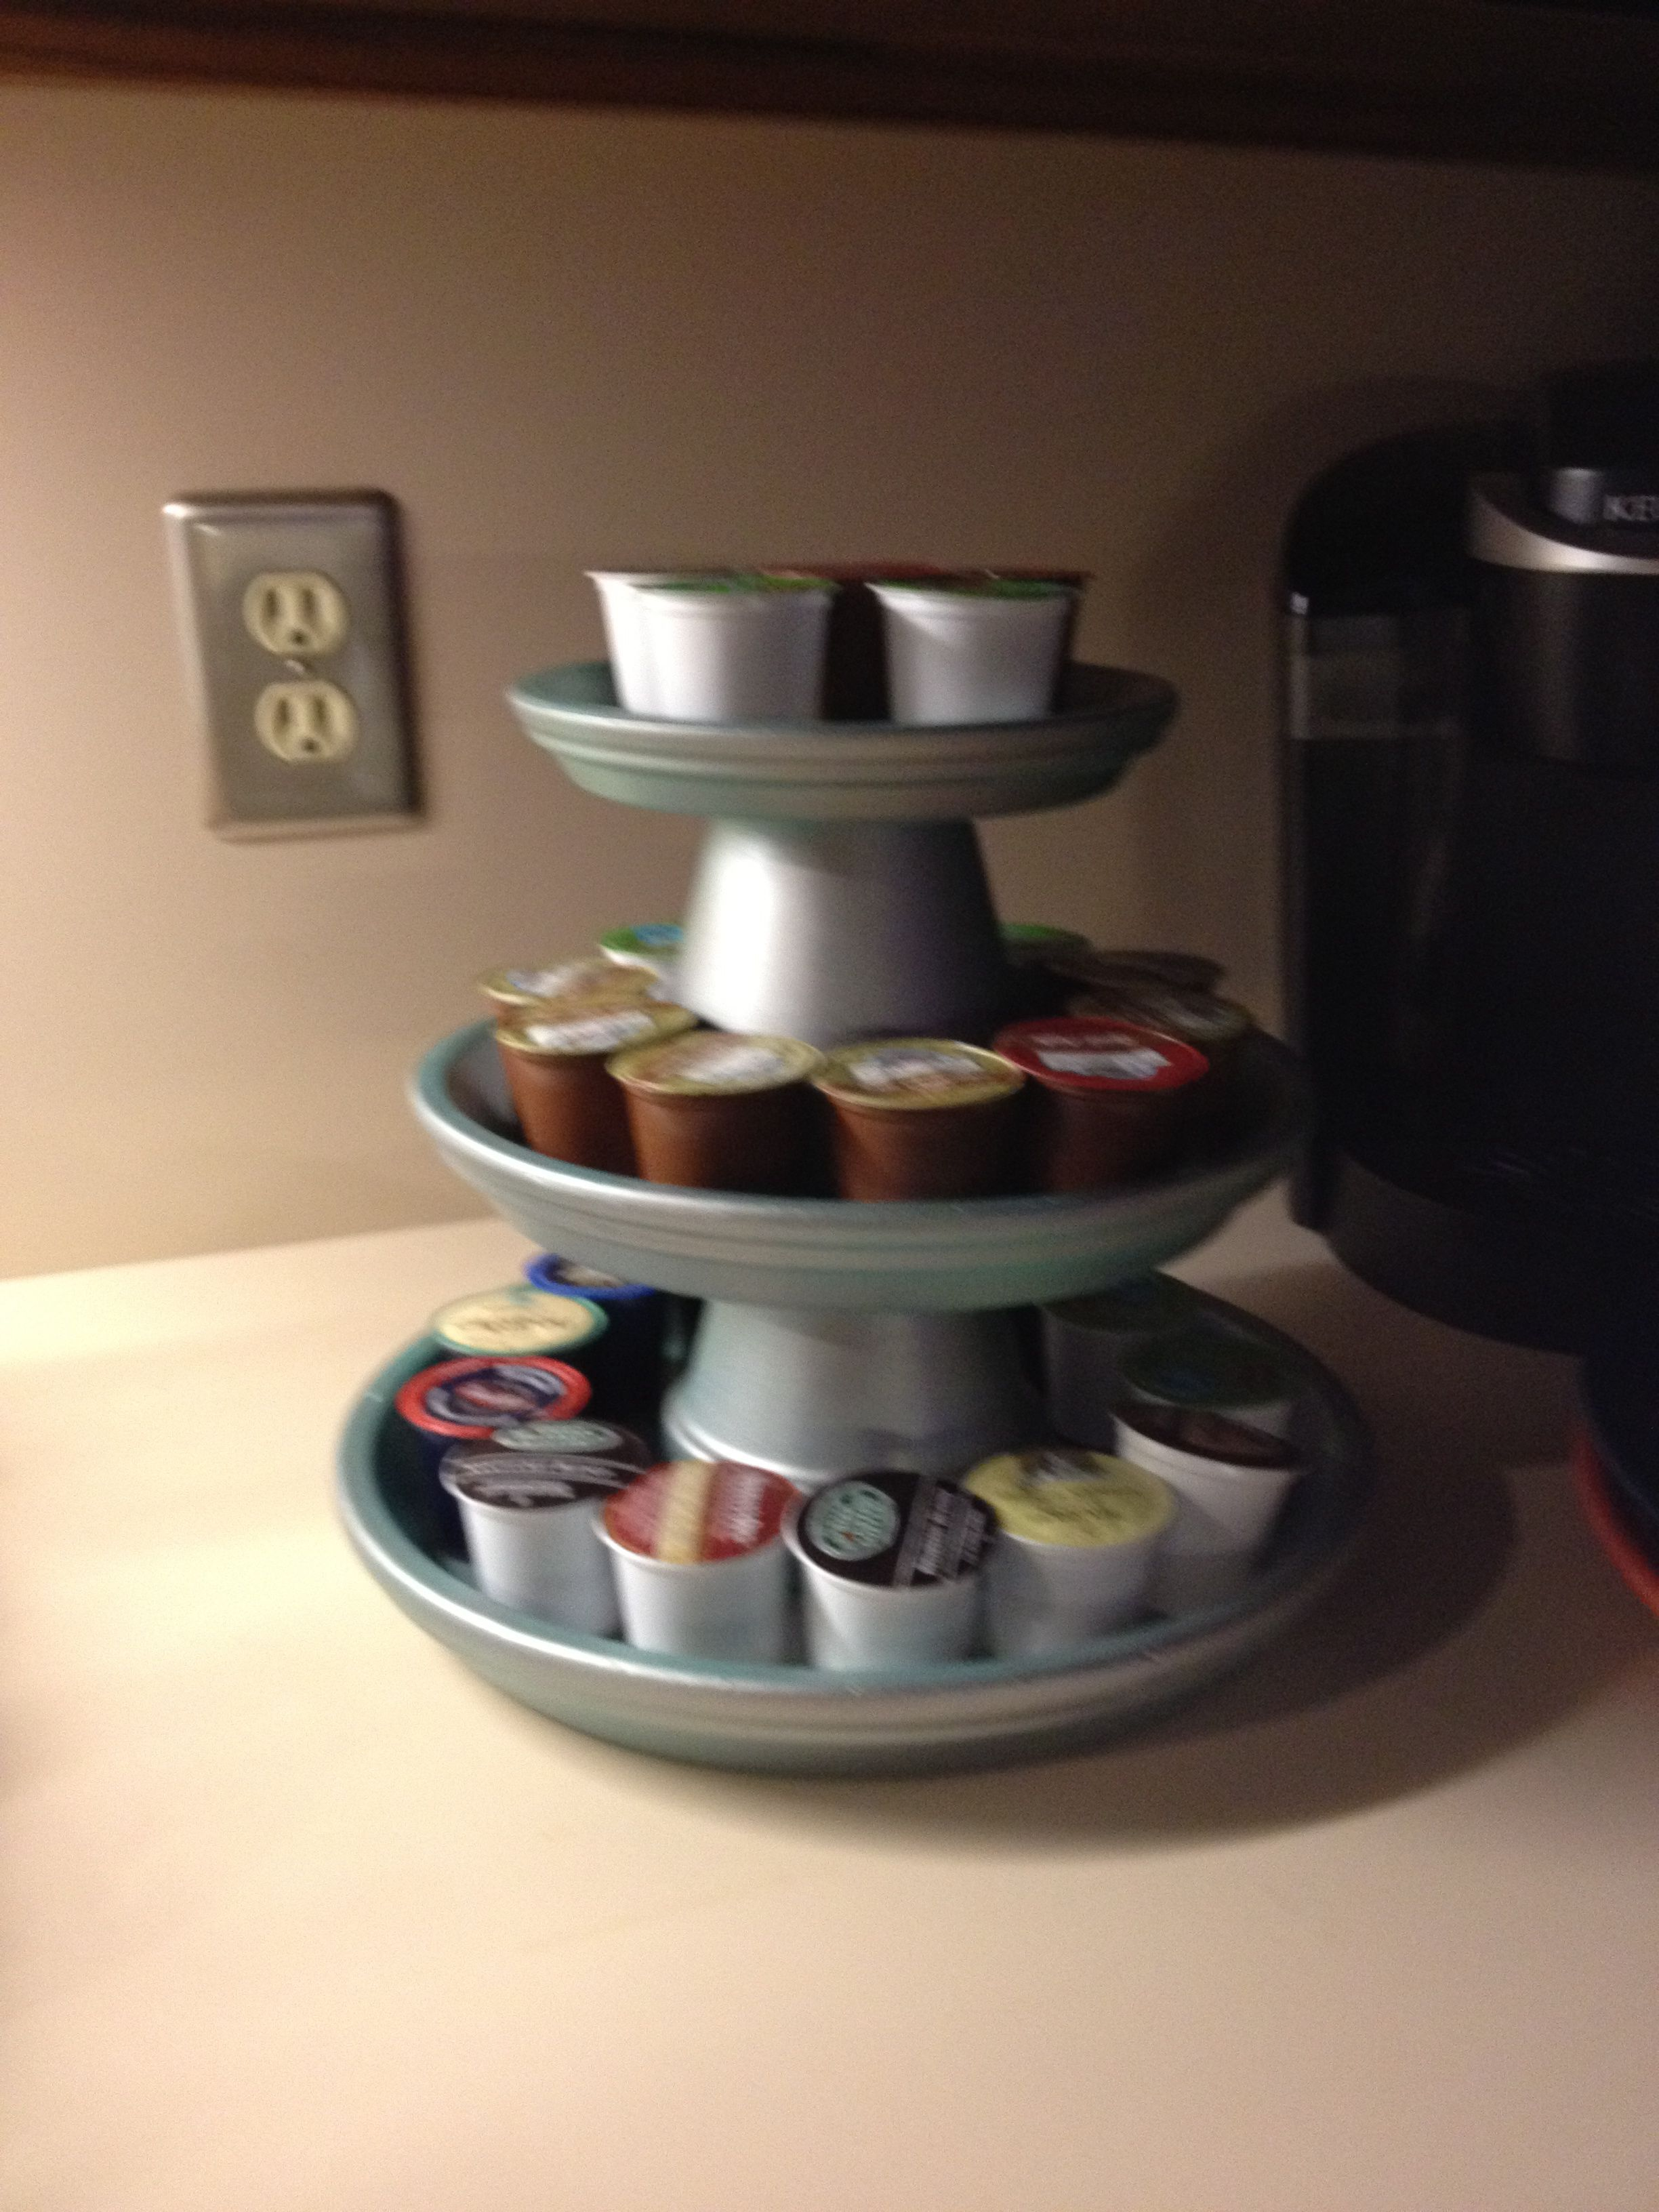 I'm using my tiered terracotta plates as a kcups holder